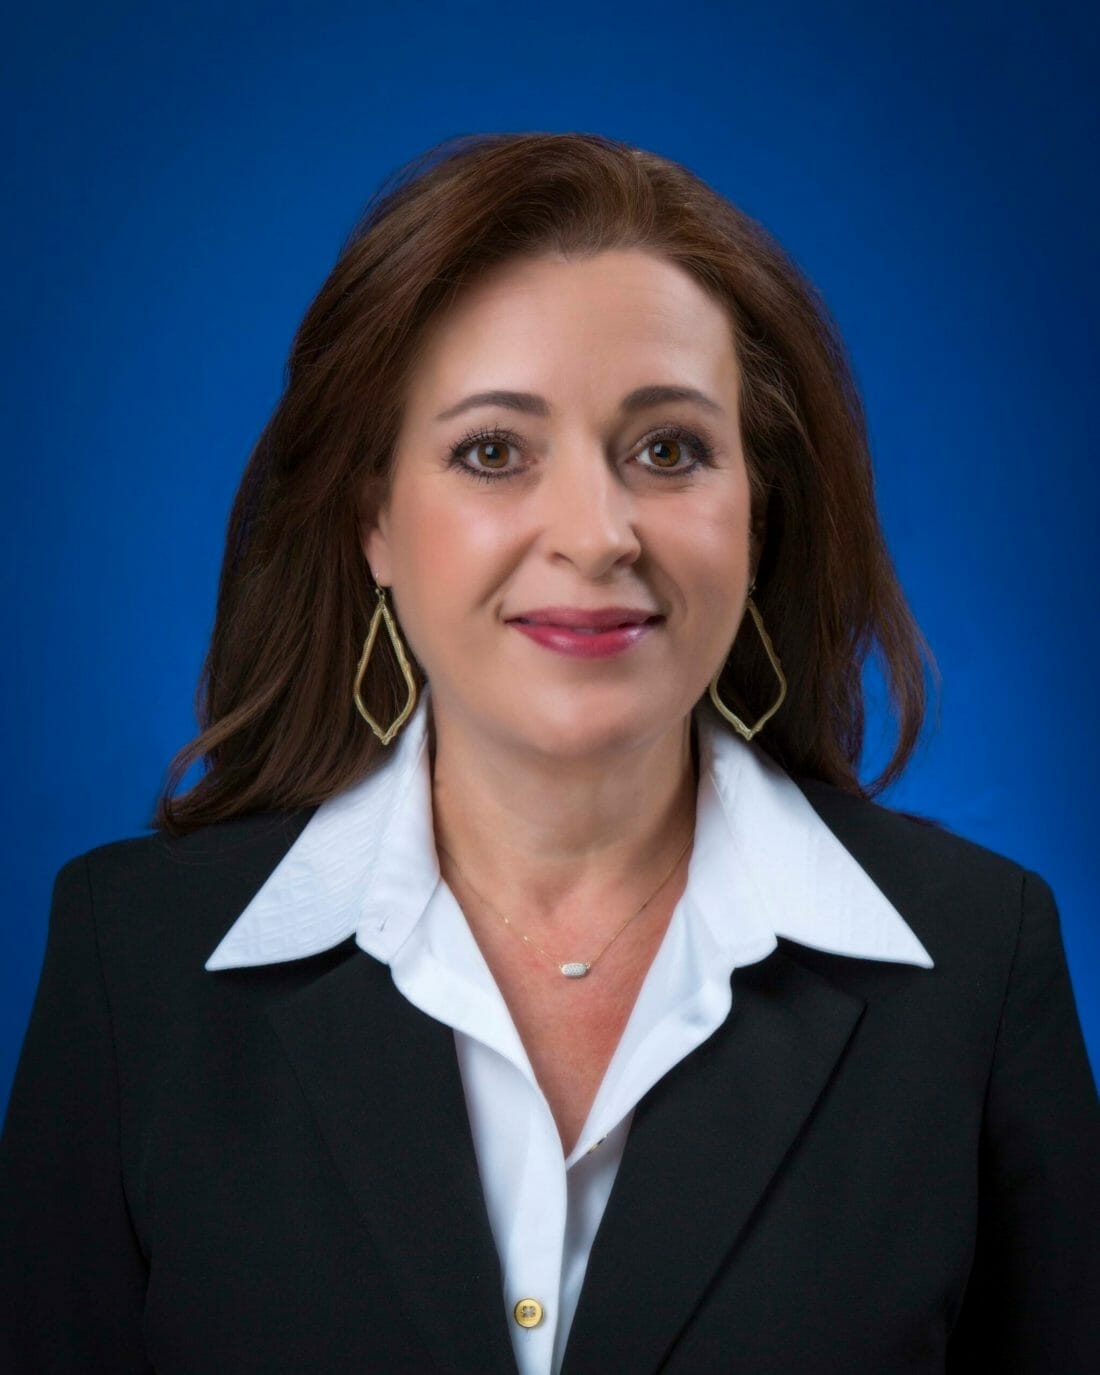 Corporate Business headshot of woman against blue background